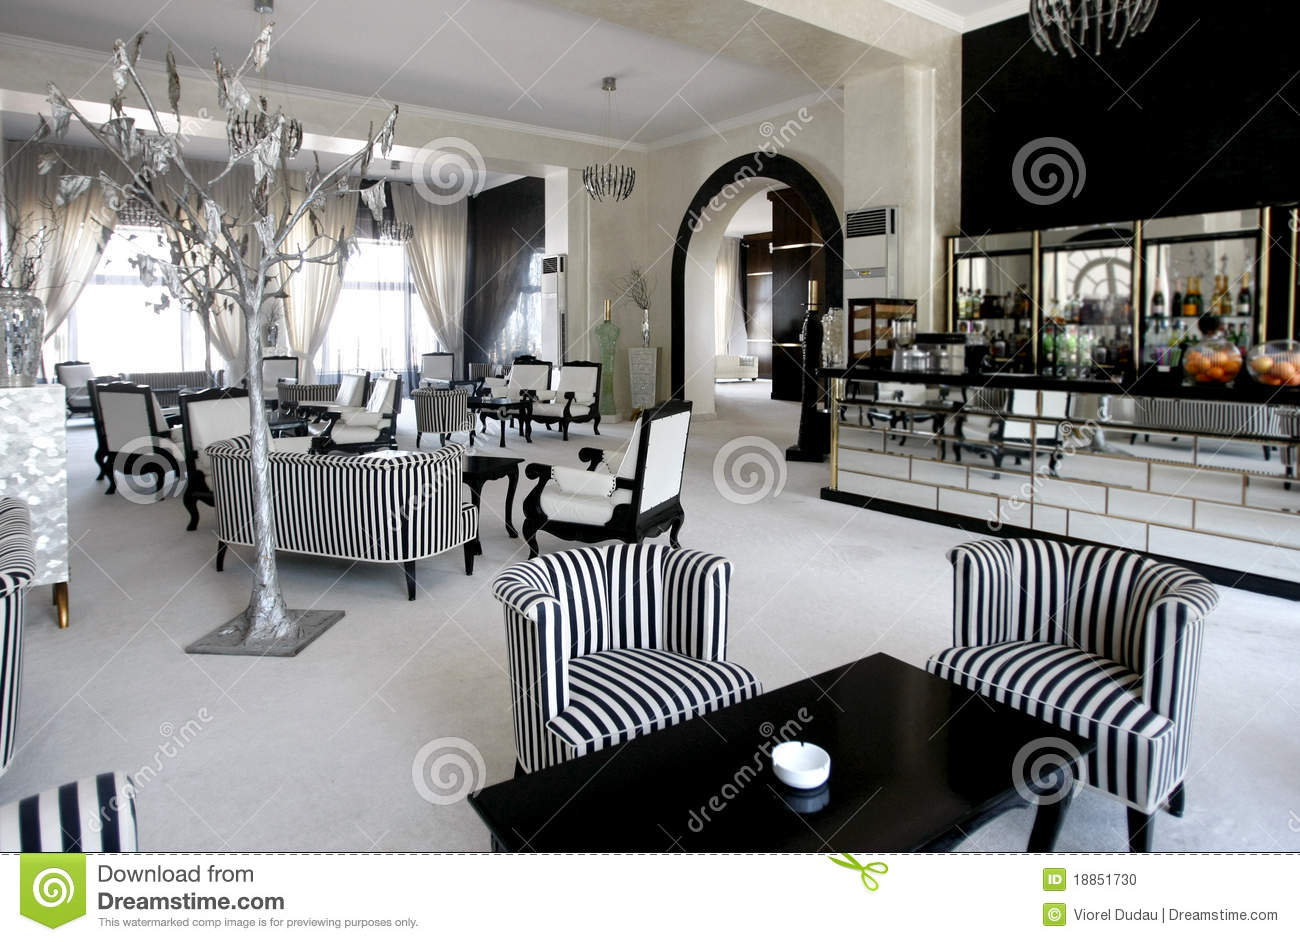 Luxury Cafe In Expensive Hotel Stock Photo Image 18851730 : luxury cafe expensive hotel 18851730 from www.dreamstime.com size 1300 x 942 jpeg 168kB